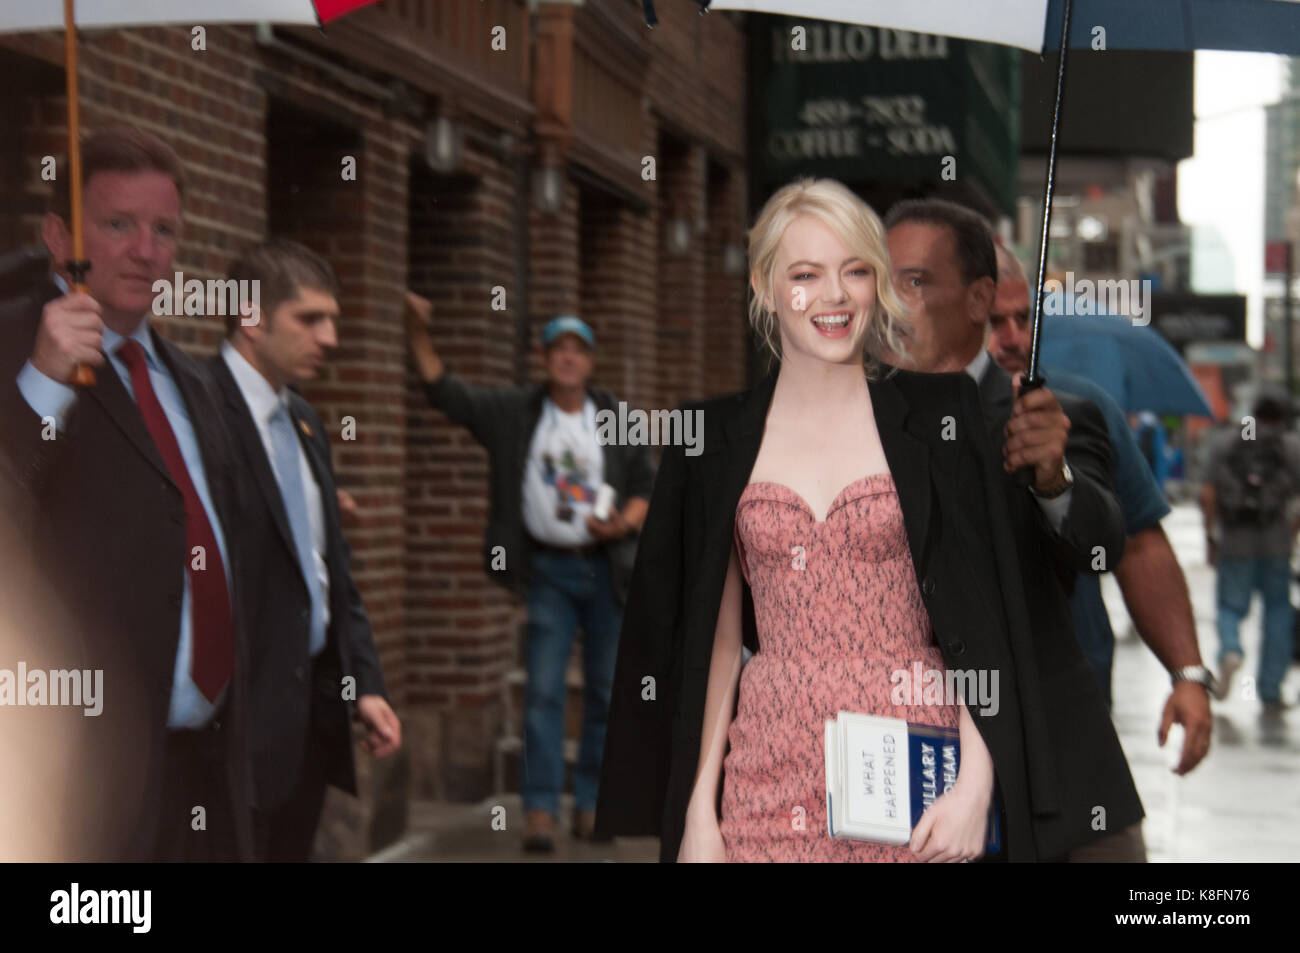 Emma Stone arrivant à Colbert Show Photo Stock